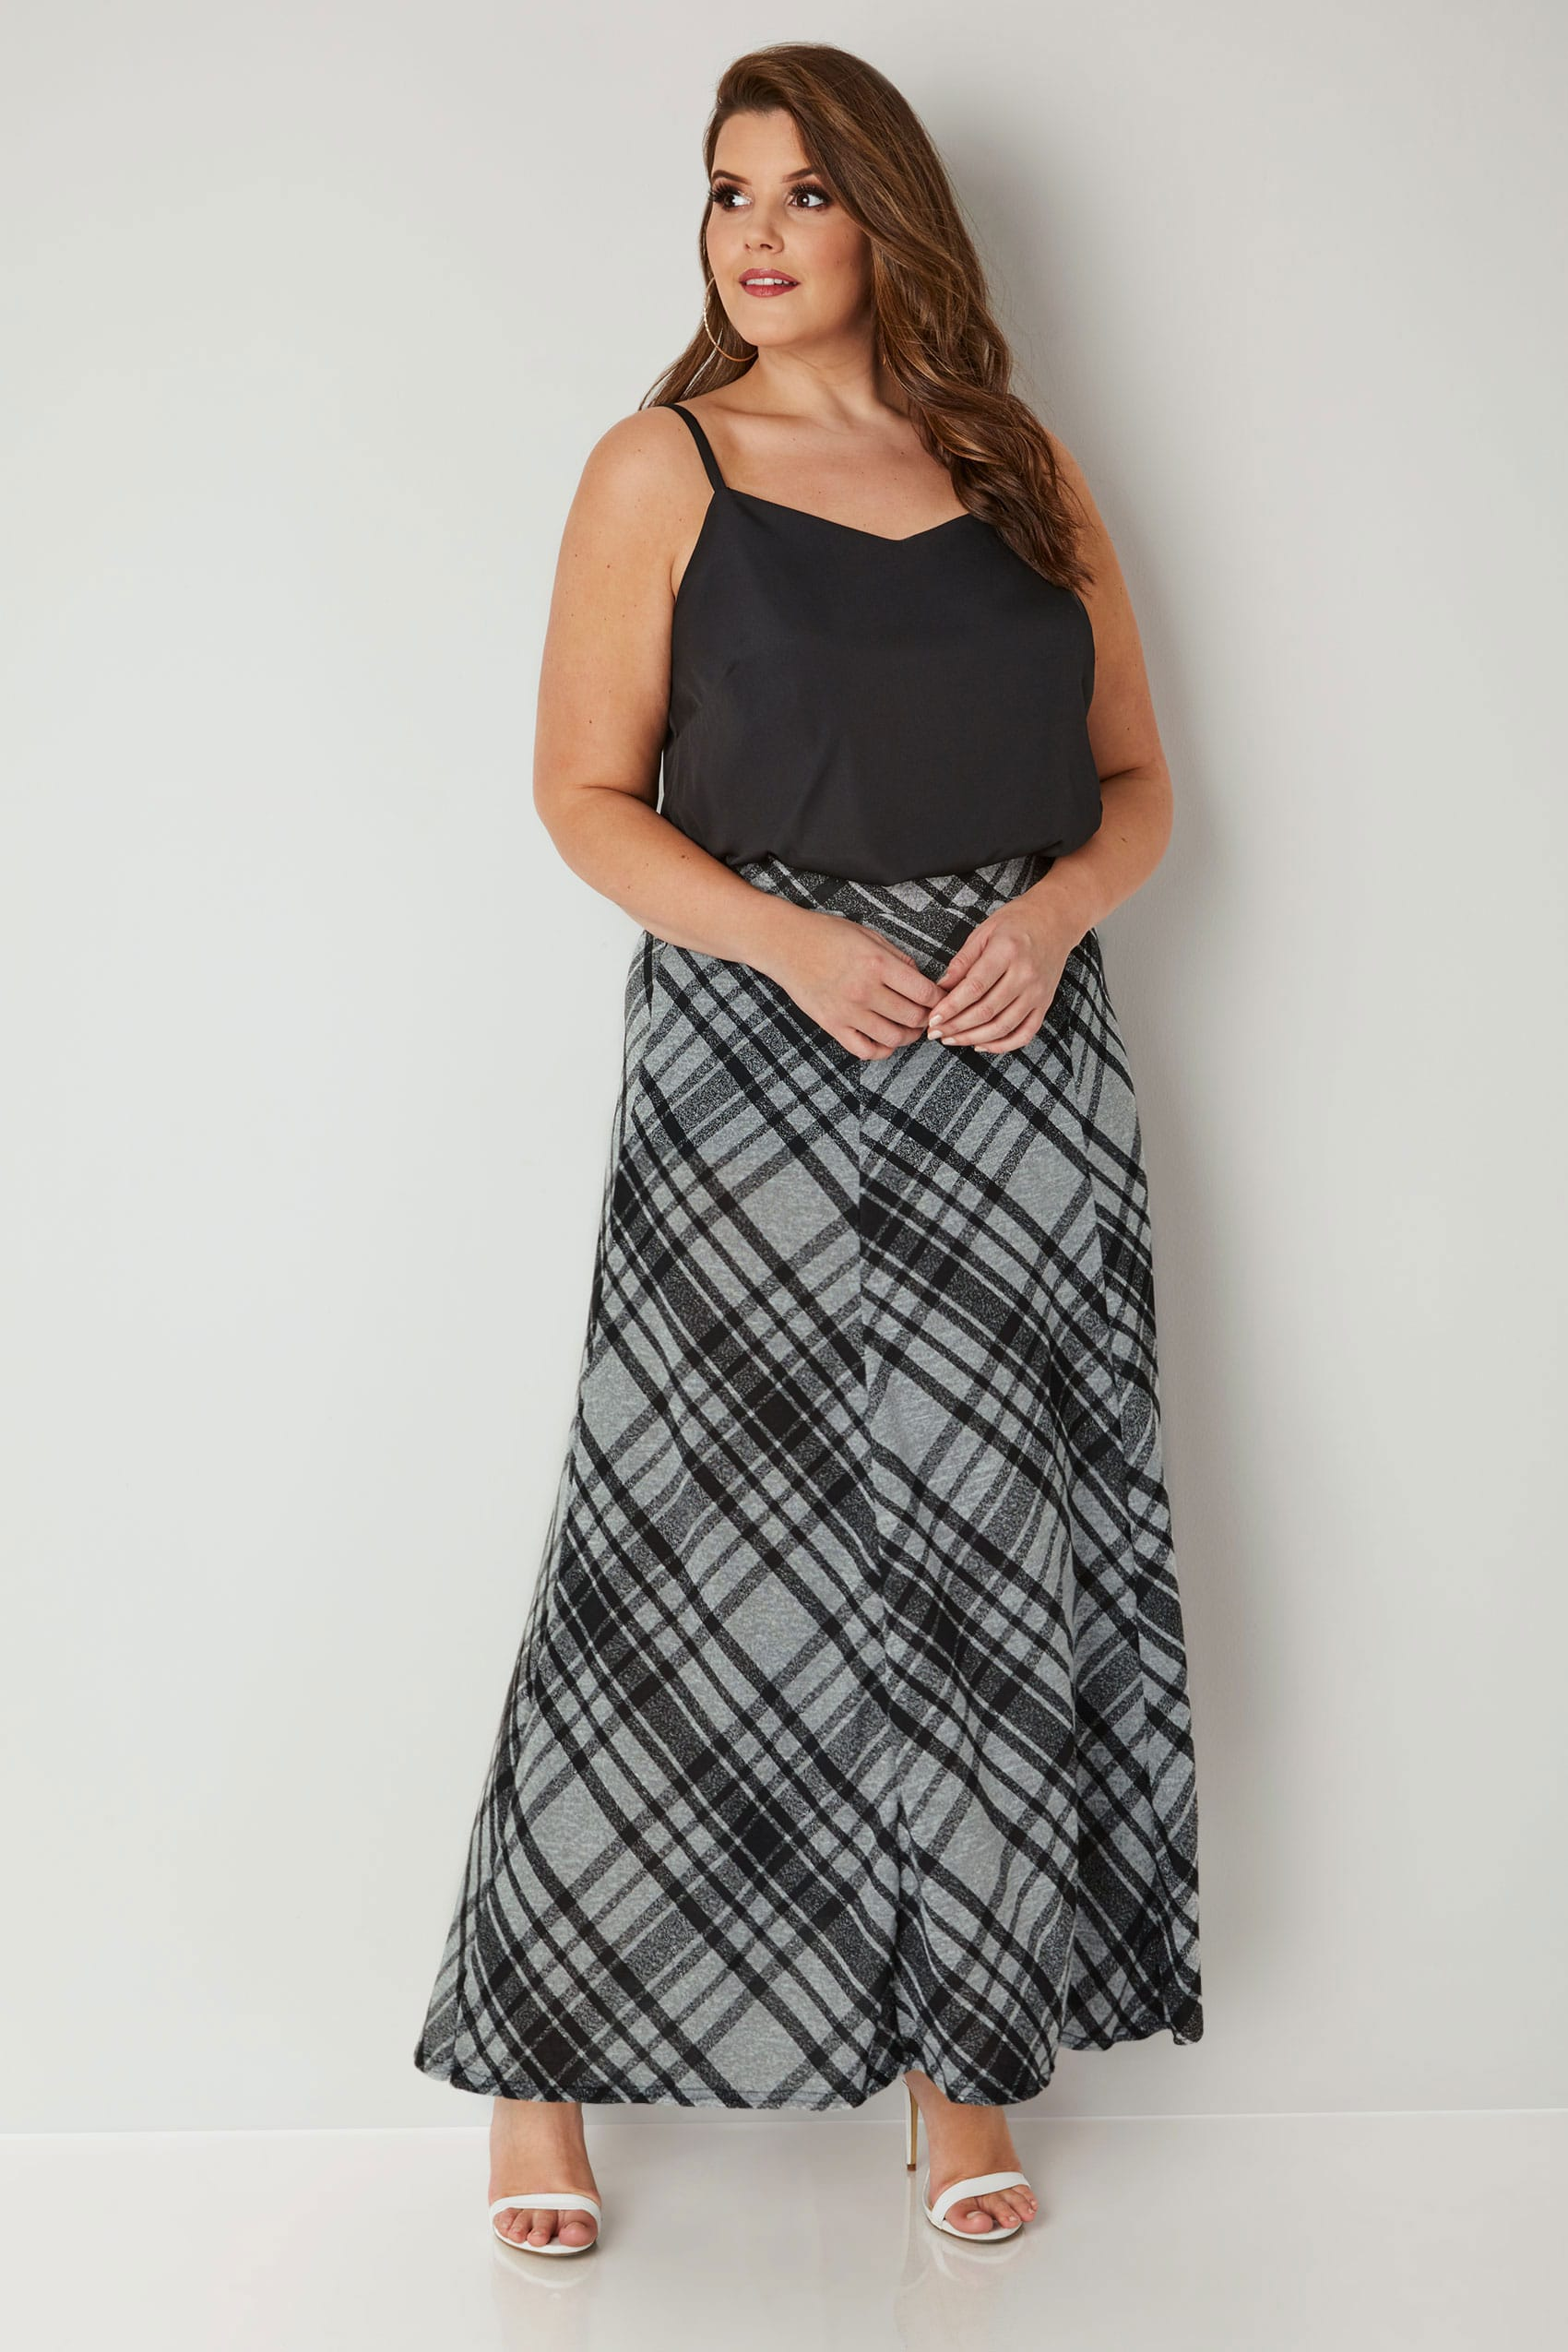 07e164756a Black & Grey Checked Maxi Skirt, Plus size 16 to 36